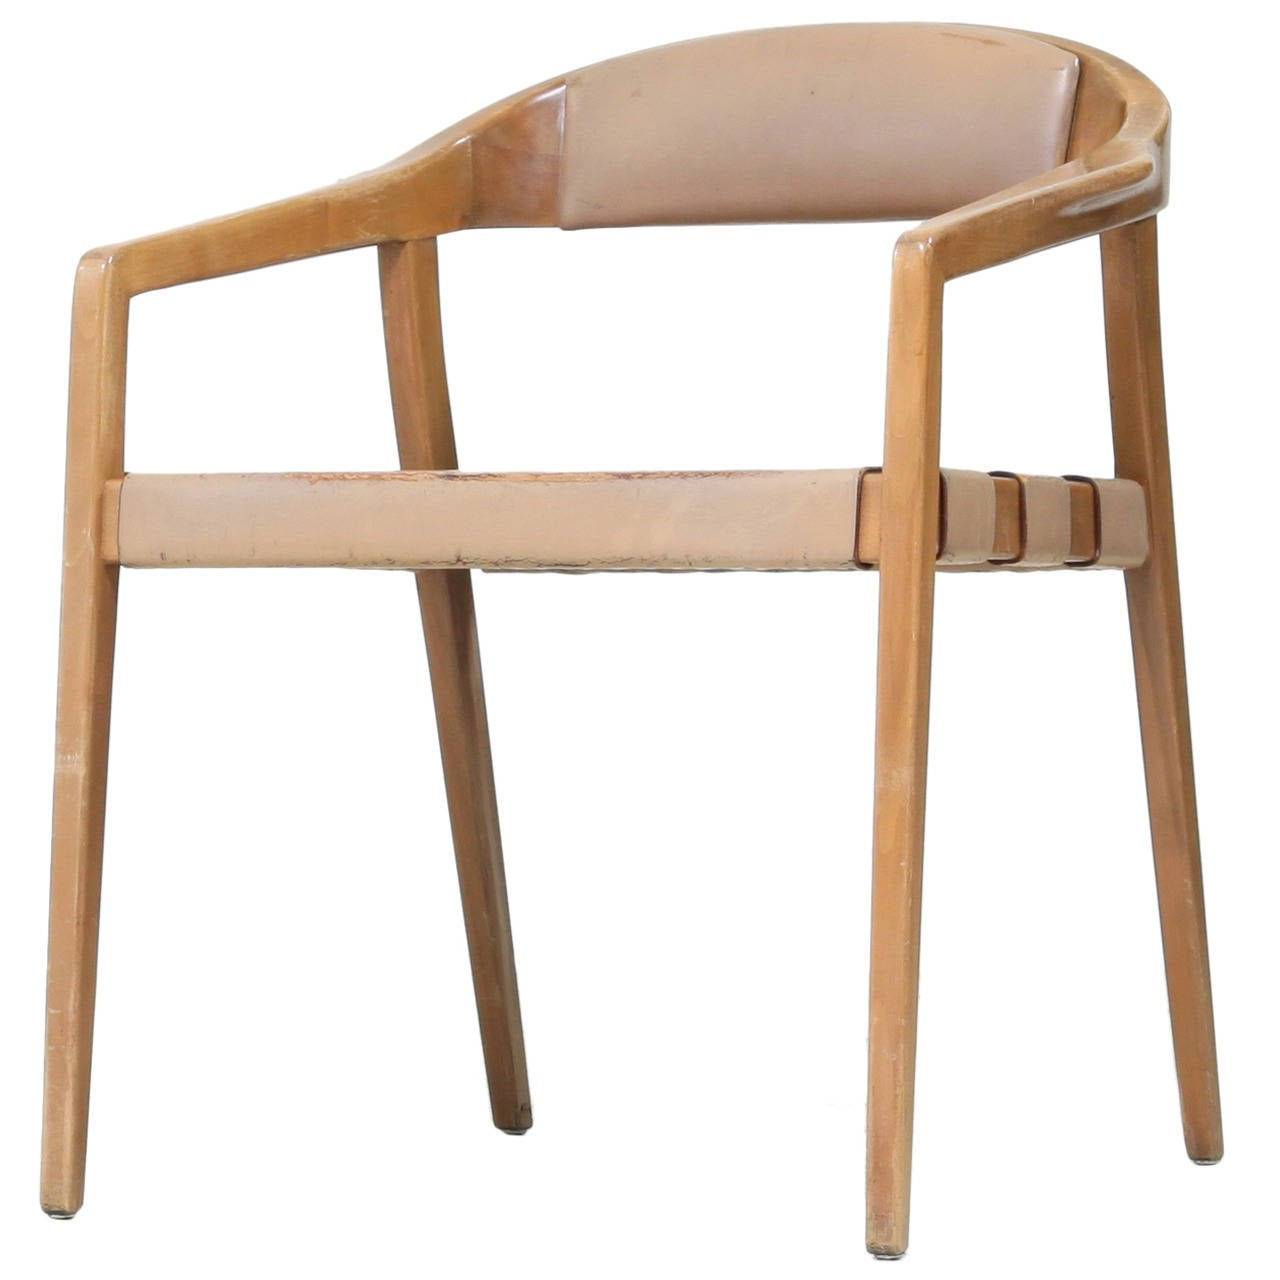 Armrest Chair in the Manner of Rastad and Relling